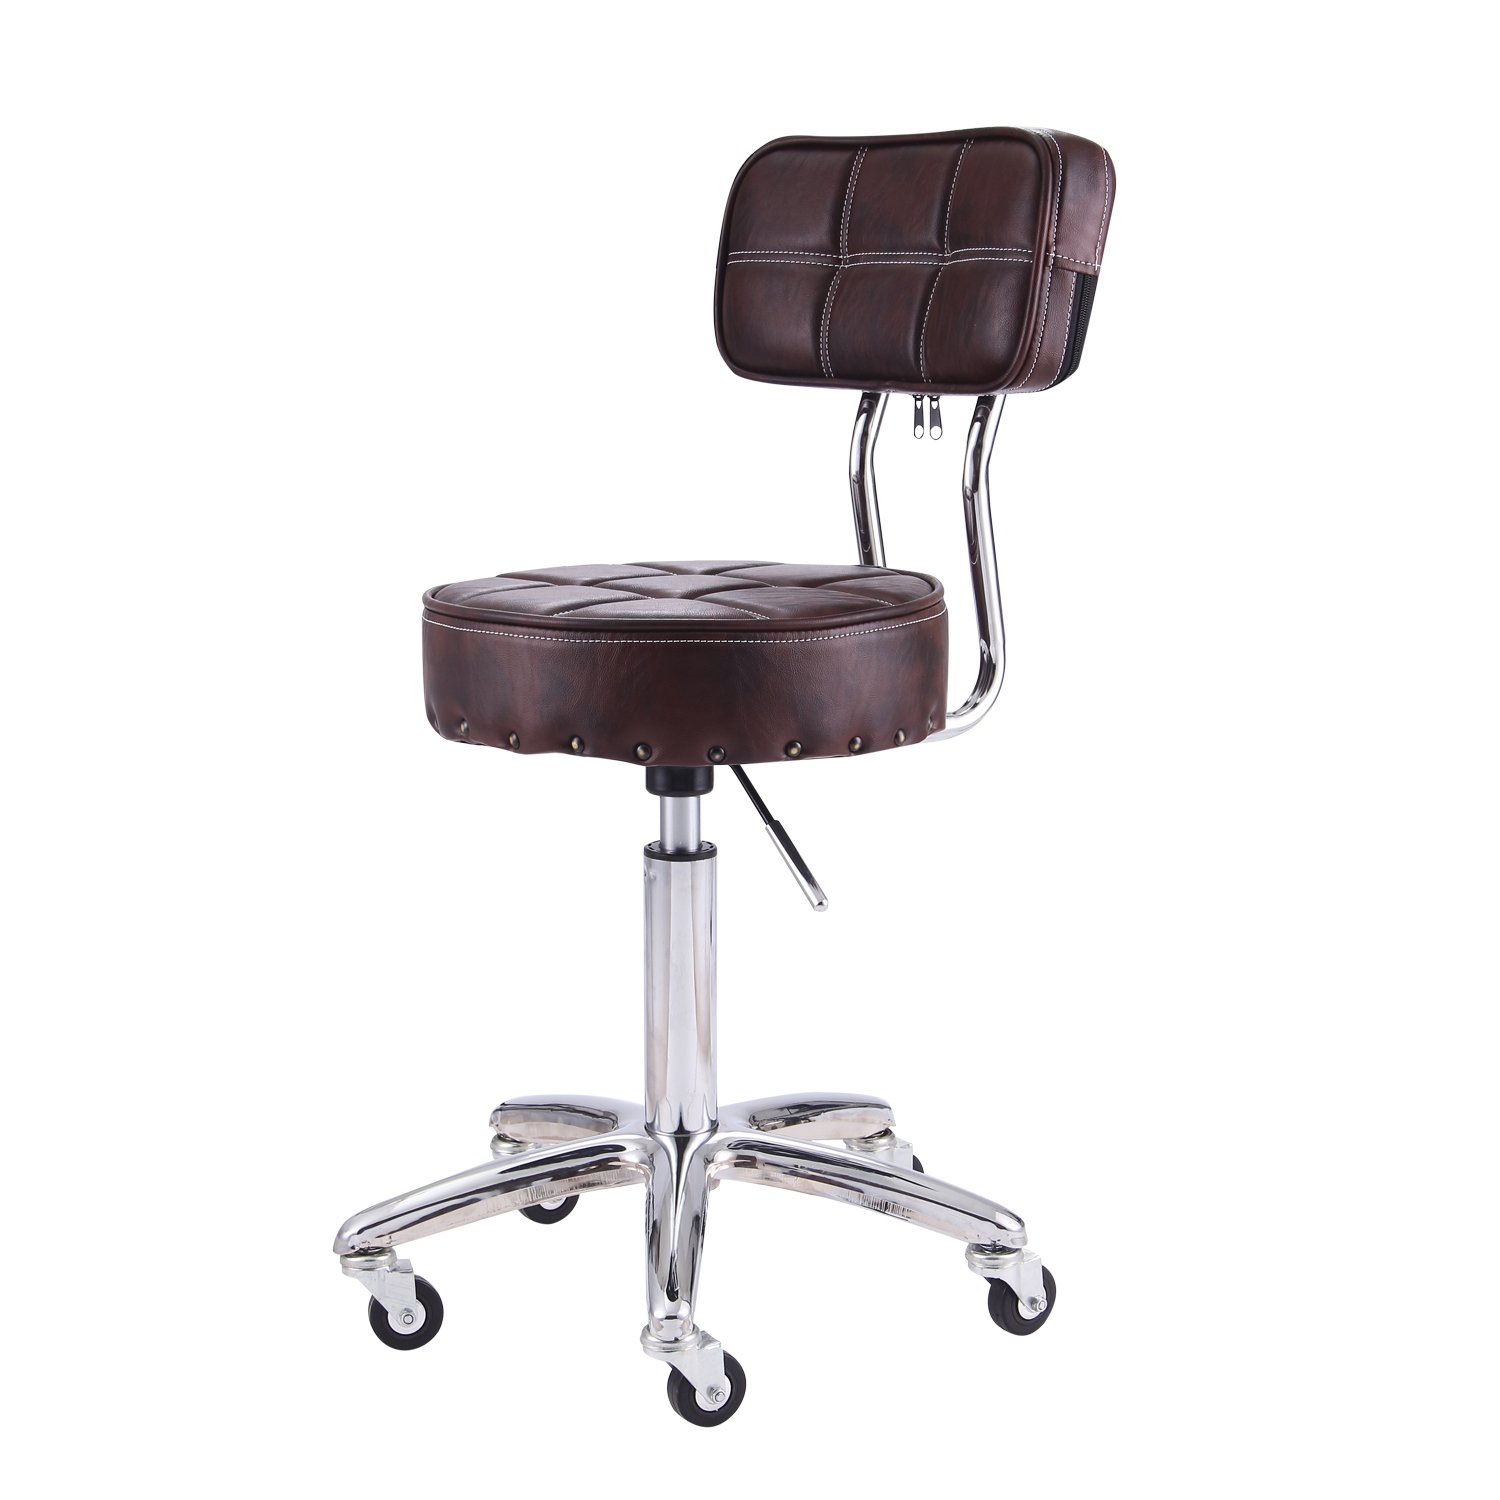 Rfiver 13.2inch Seat Cushion Ergonomic PU Leather Adjustable Rolling Office Work Stool Chair Swivel Home Desk Chairs with Backrest and Chrome Metal Base in Brown SC1003-2